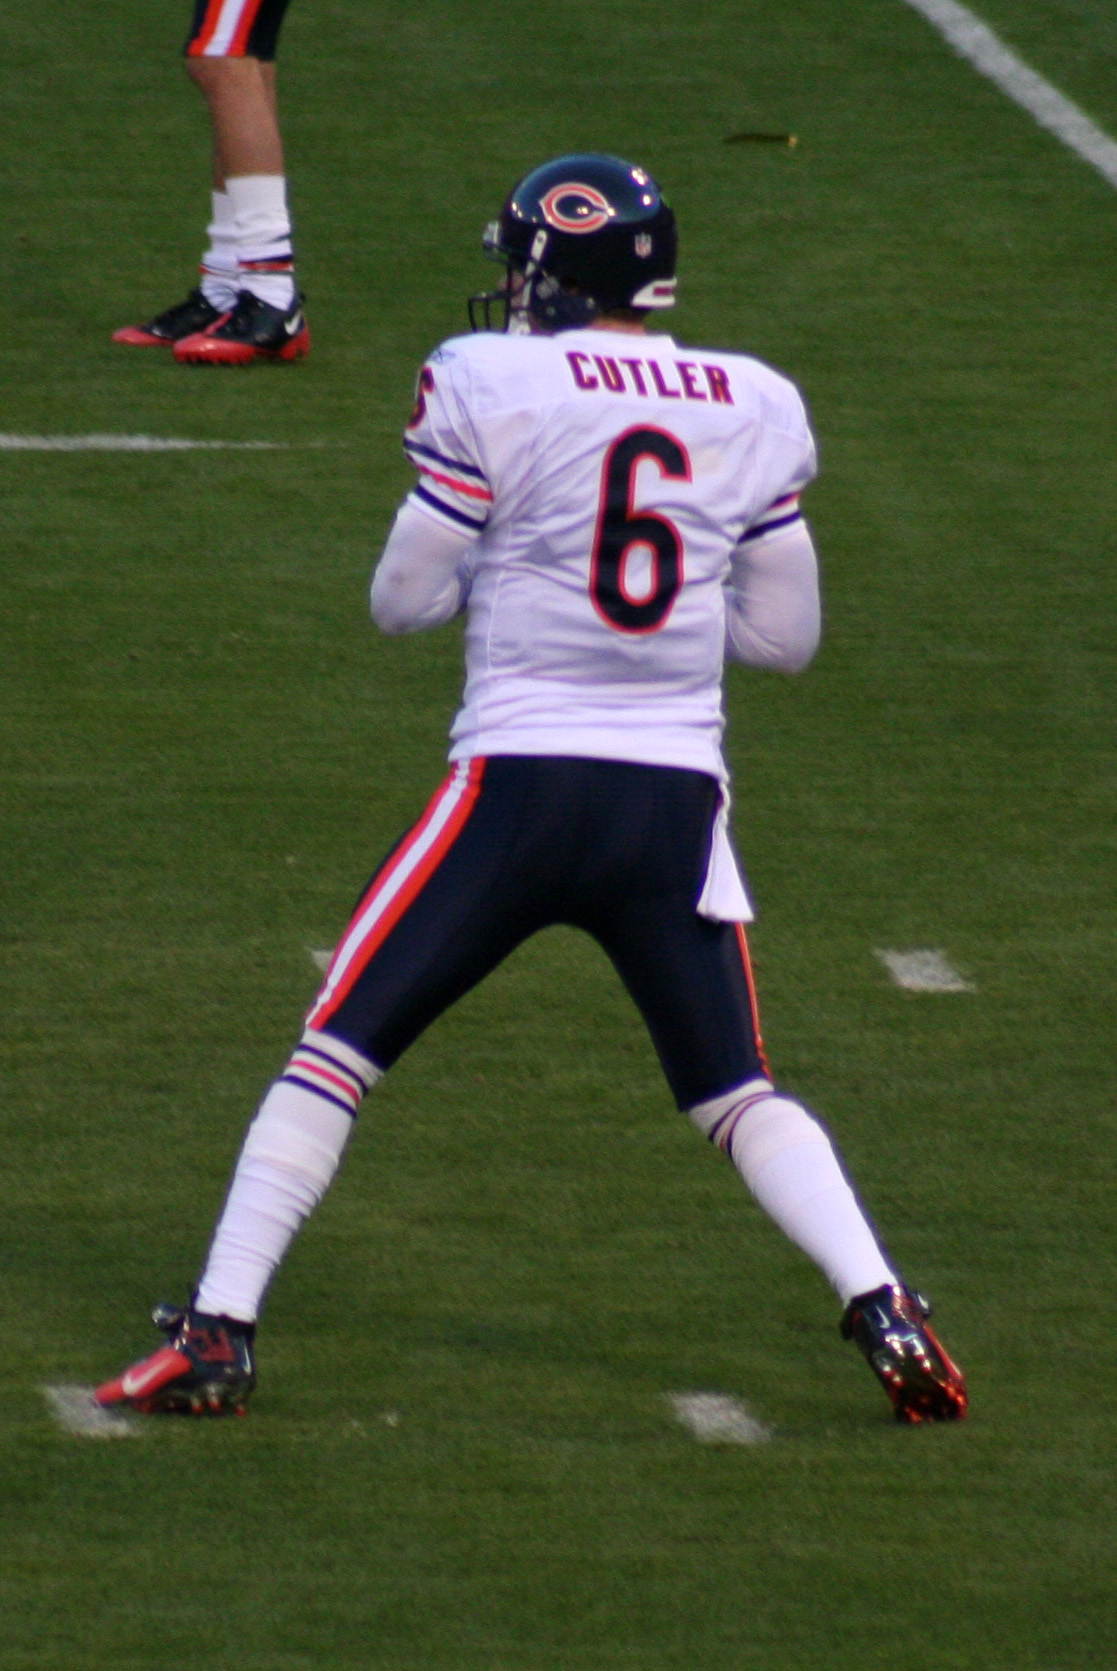 Jerseys NFL Wholesale - Chicago Bears - Wikipedia, the free encyclopedia